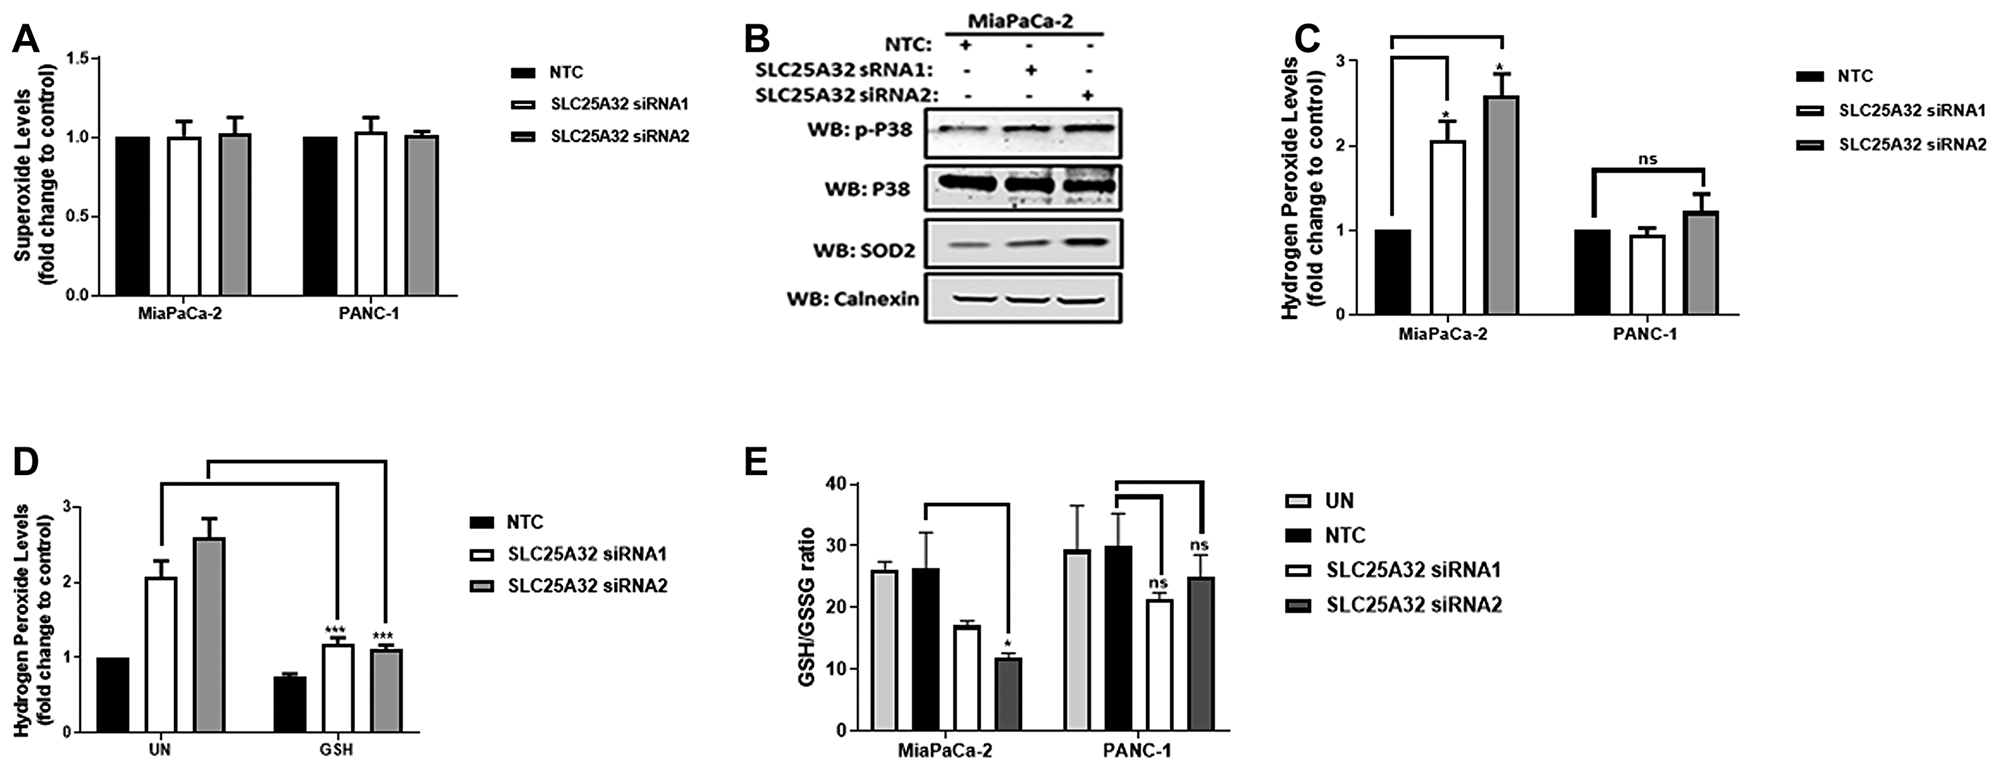 SLC25A32 knock-down induces ROS production and GSH depletion in MiaPaCa-2 cells.